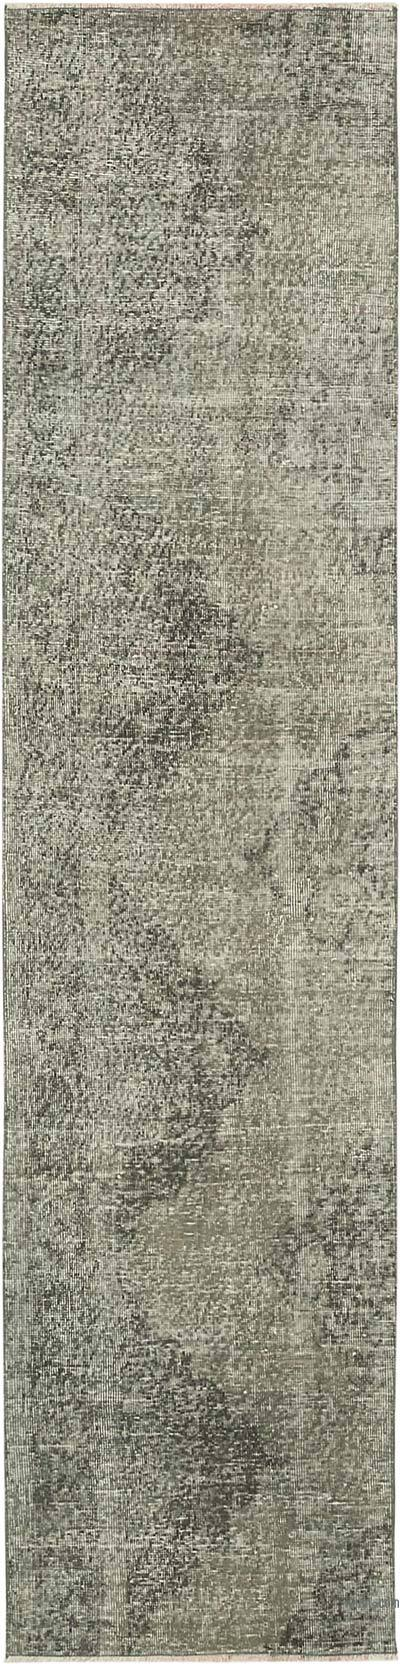 "Grey Over-dyed Turkish Vintage Runner Rug - 2' 4"" x 9' 7"" (28 in. x 115 in.)"